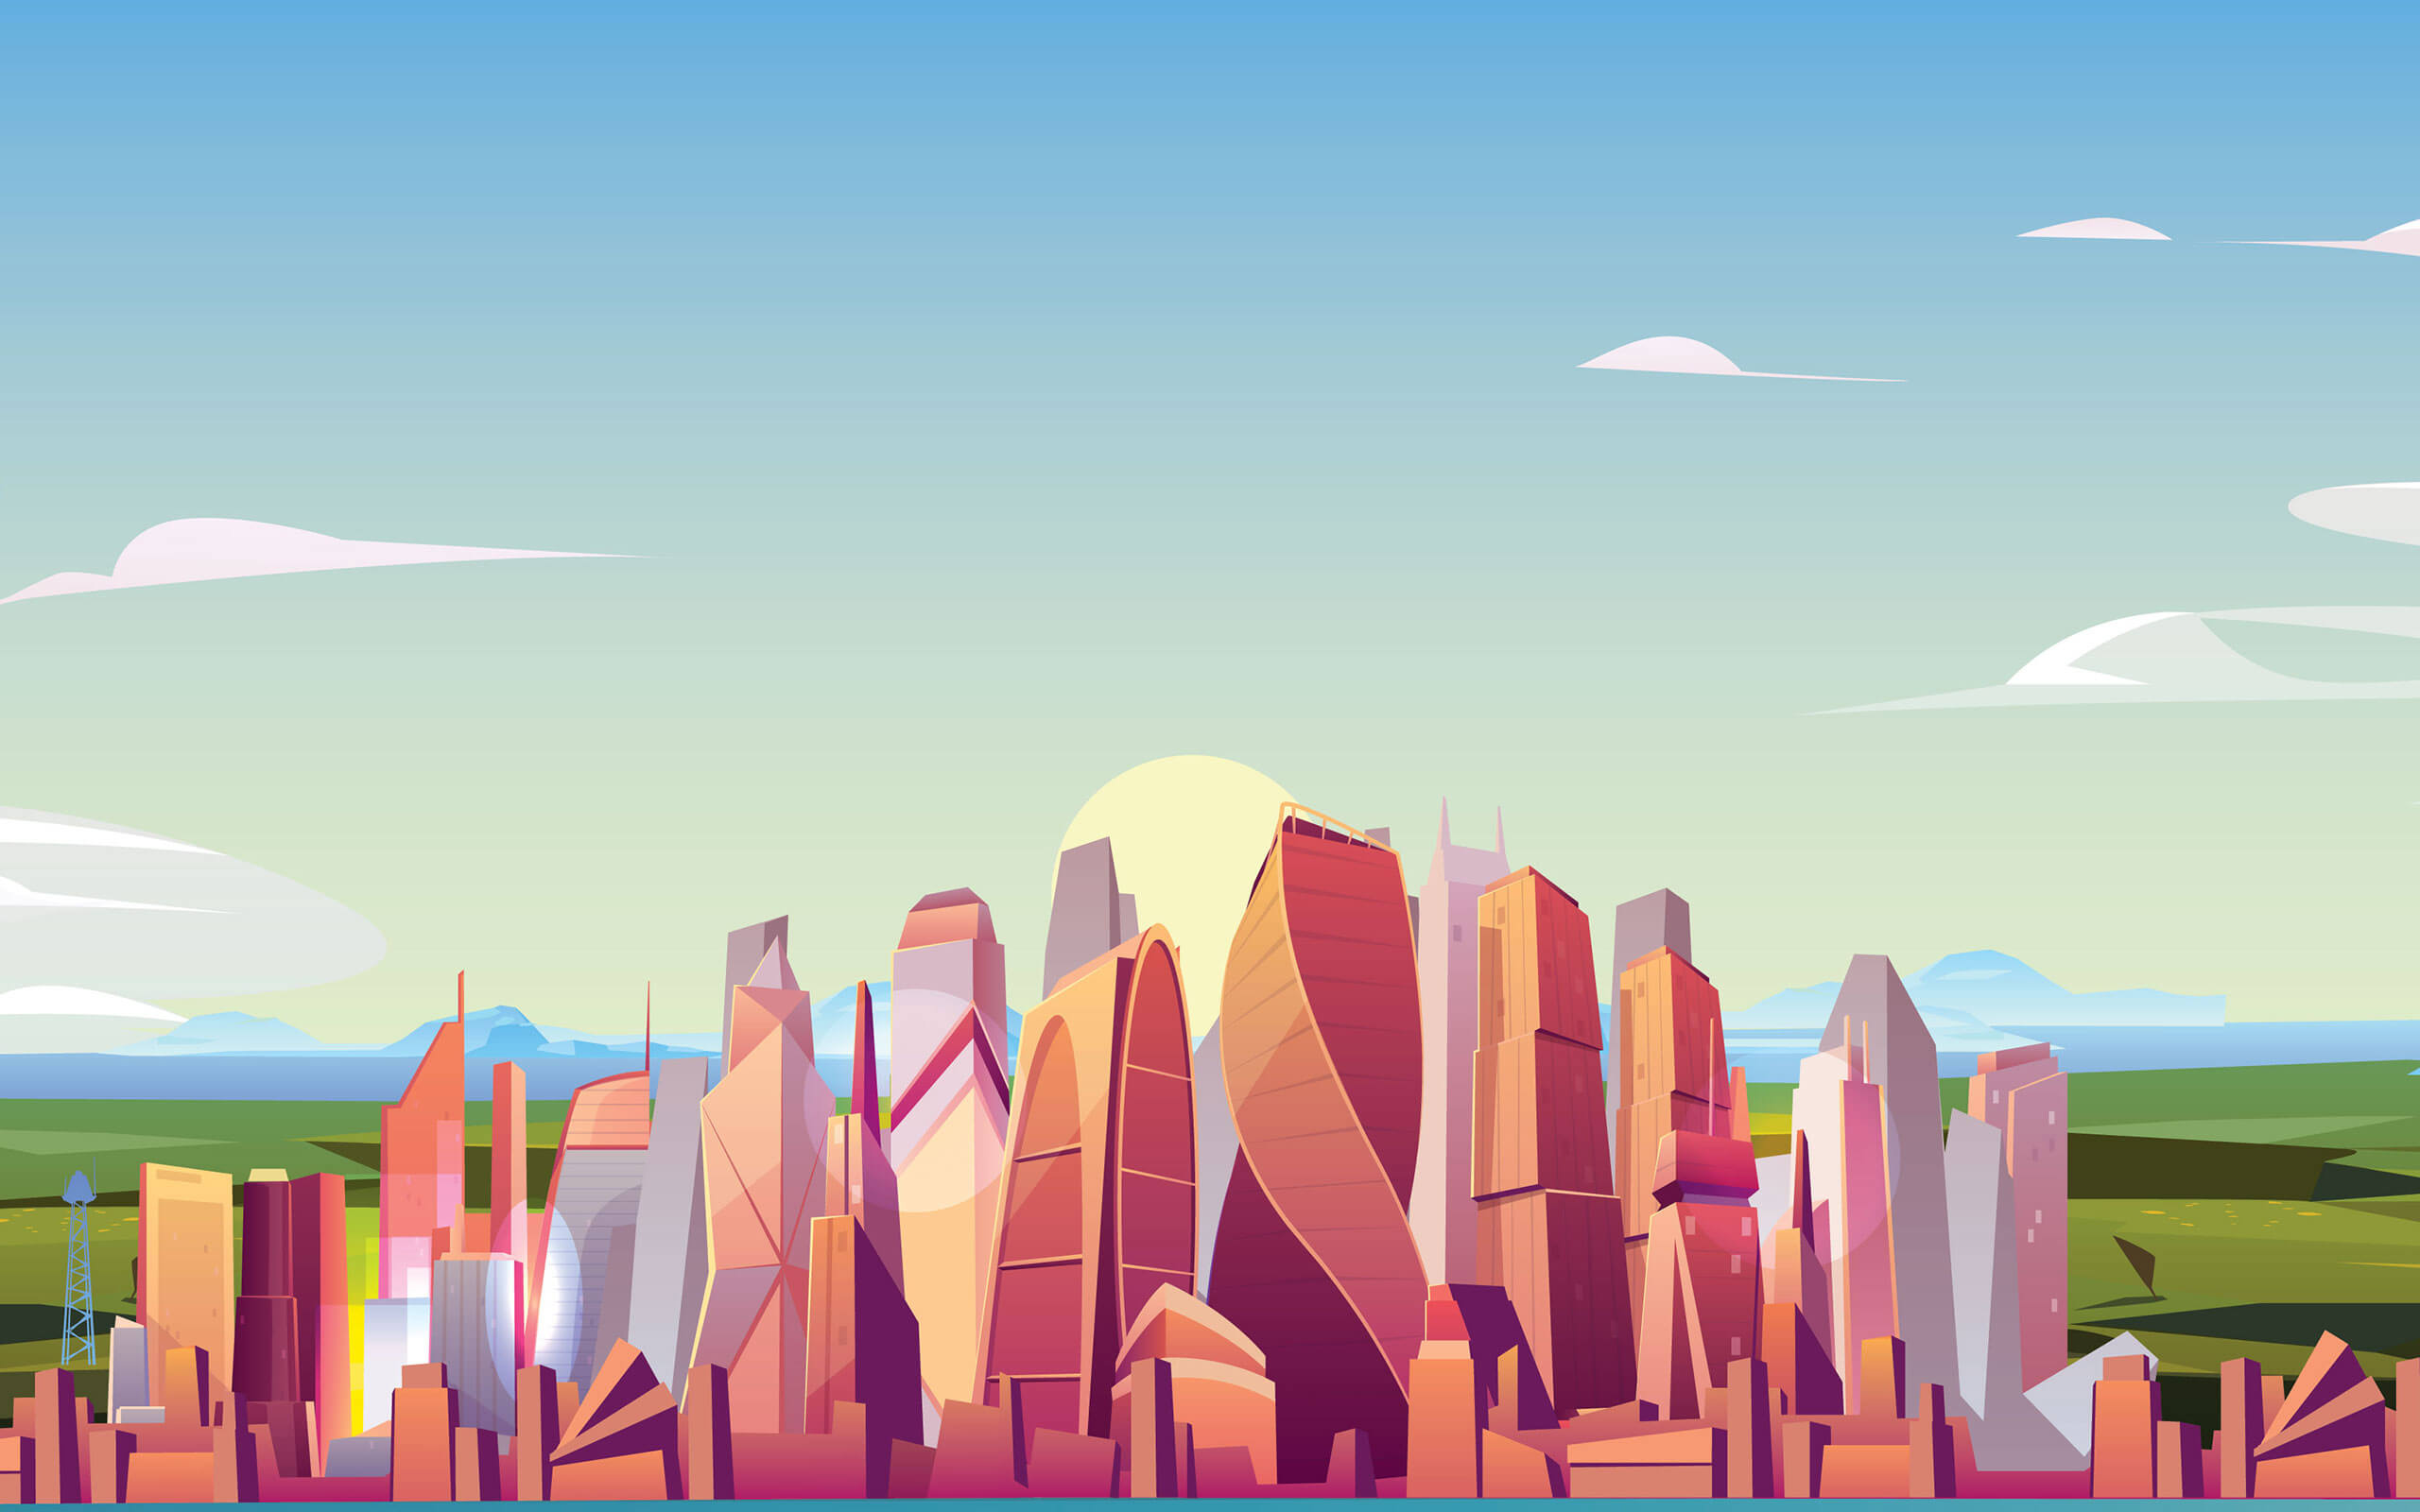 Animated image of colourful high rise buildings